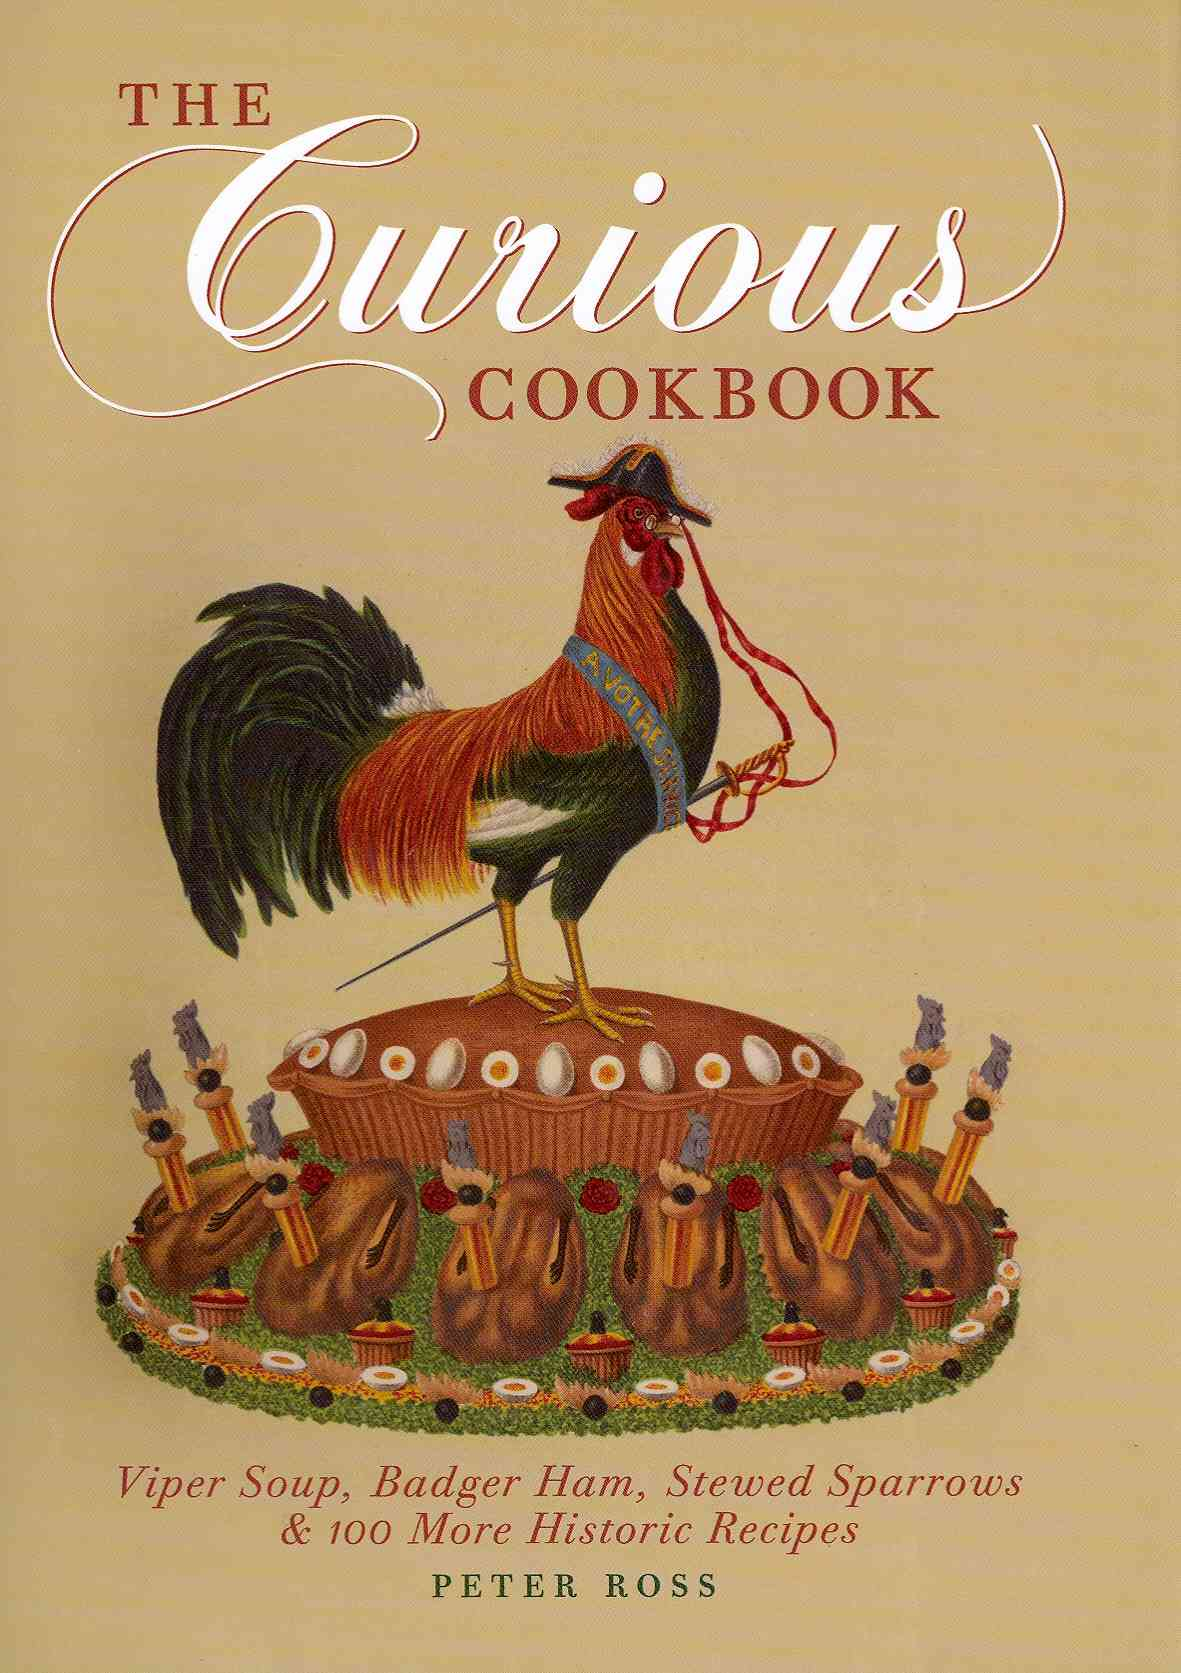 The Curious Cookbook: Viper Soup, Badger Ham, Stewed Sparrows & 100 More Historic Recipes (Hardcover)